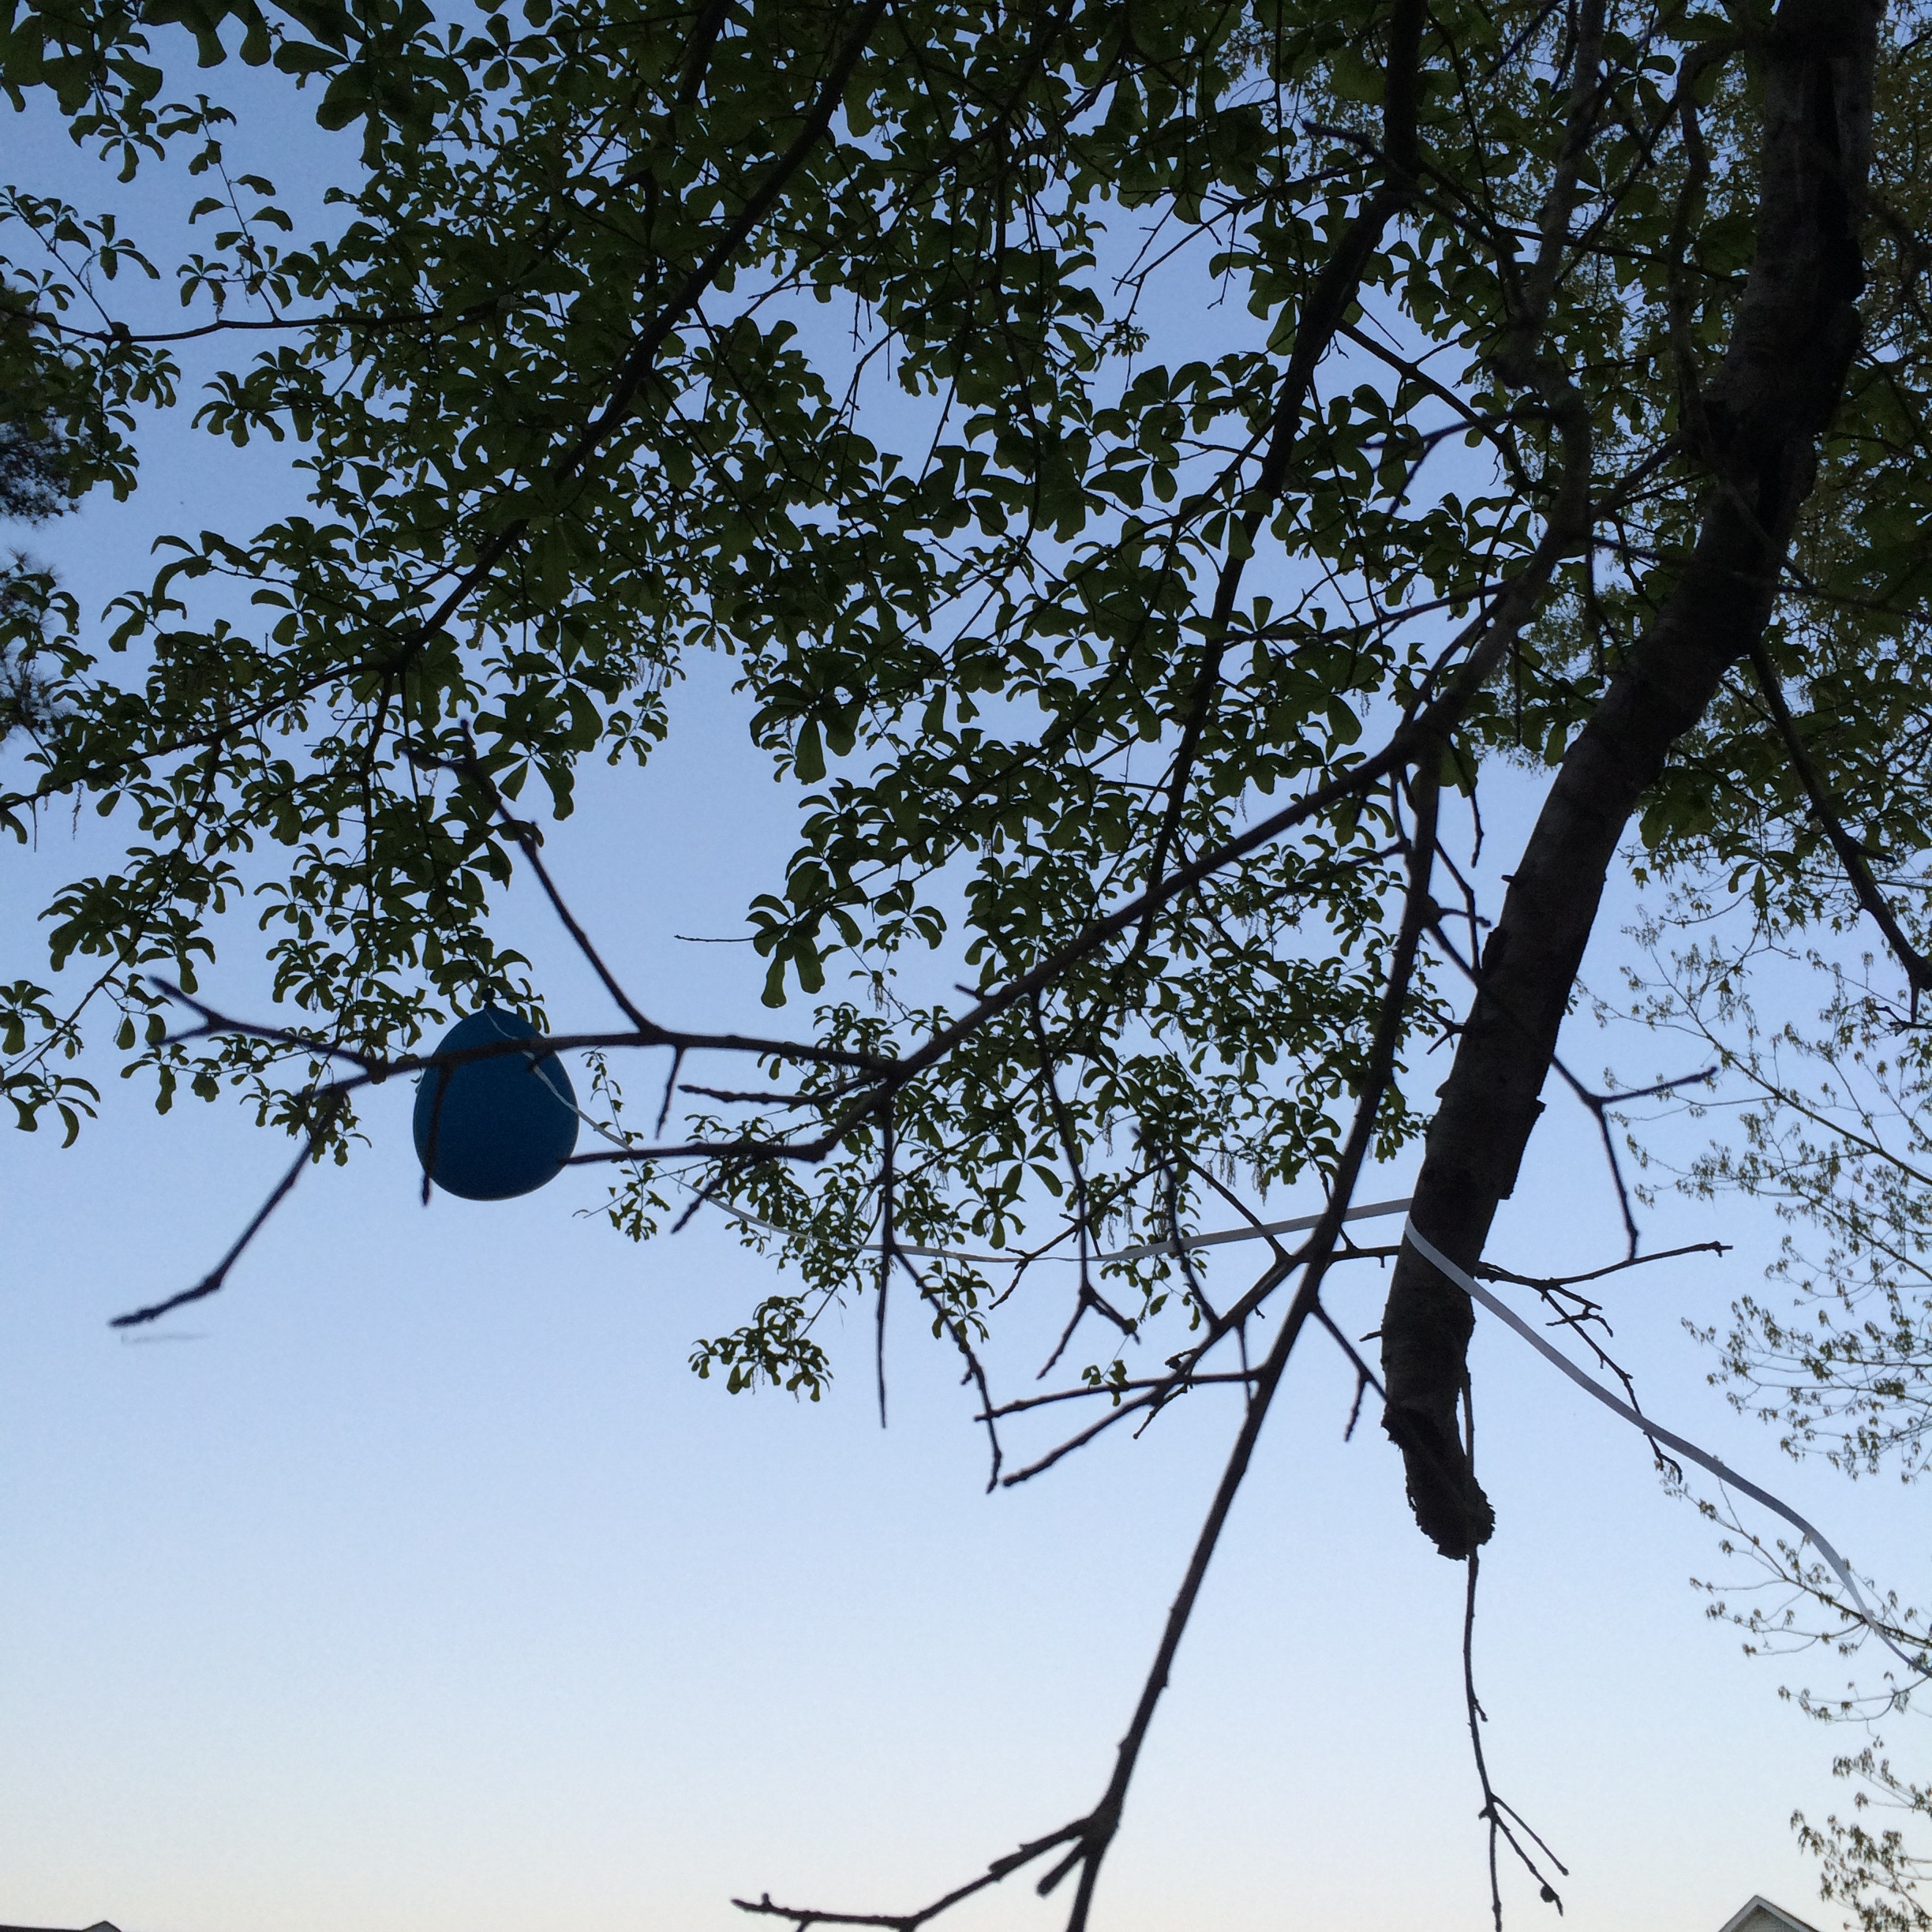 Like this balloon, I was alone and stuck.